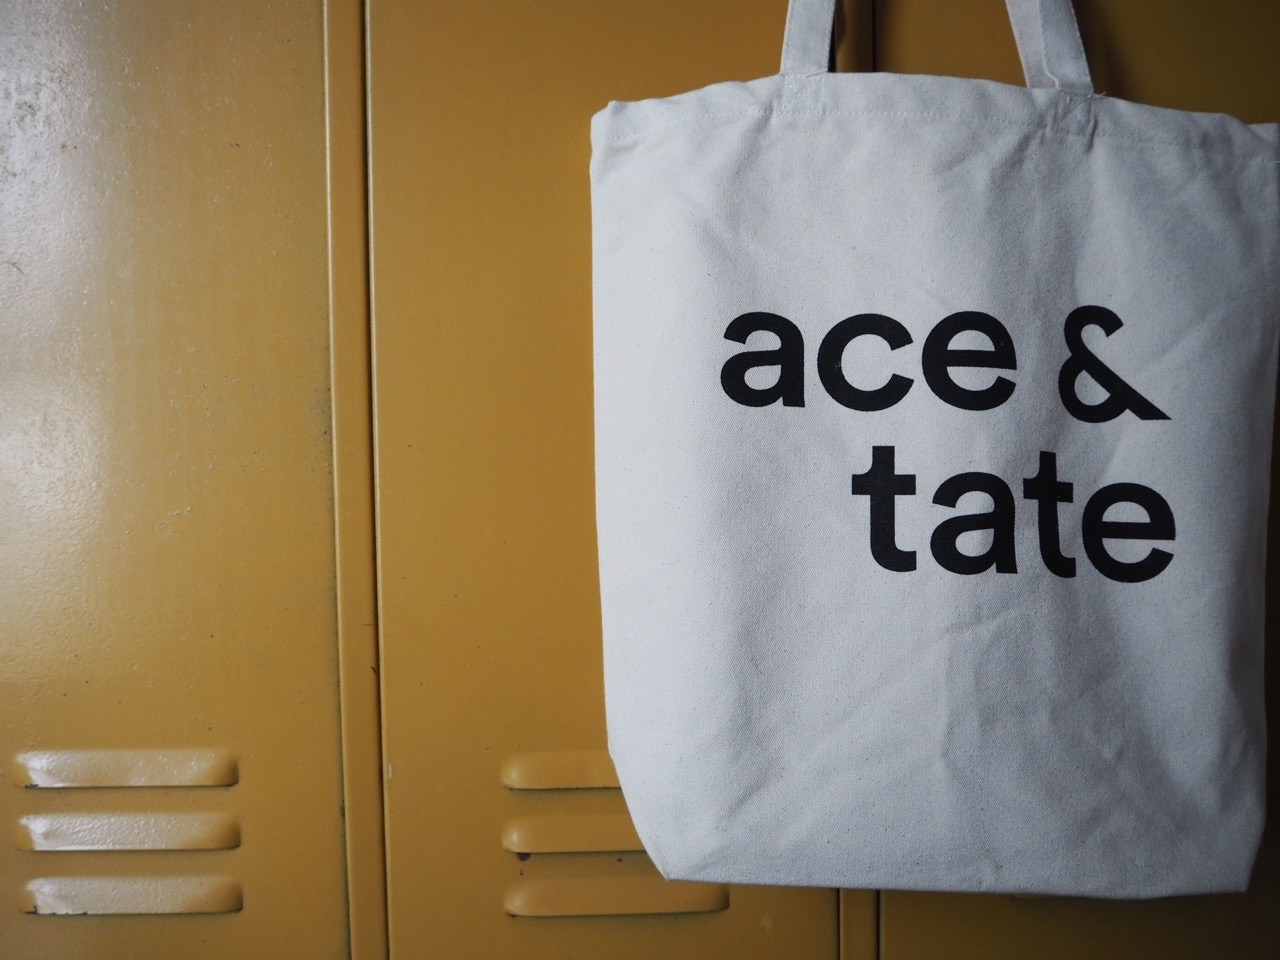 Ace_and_tate_totebag